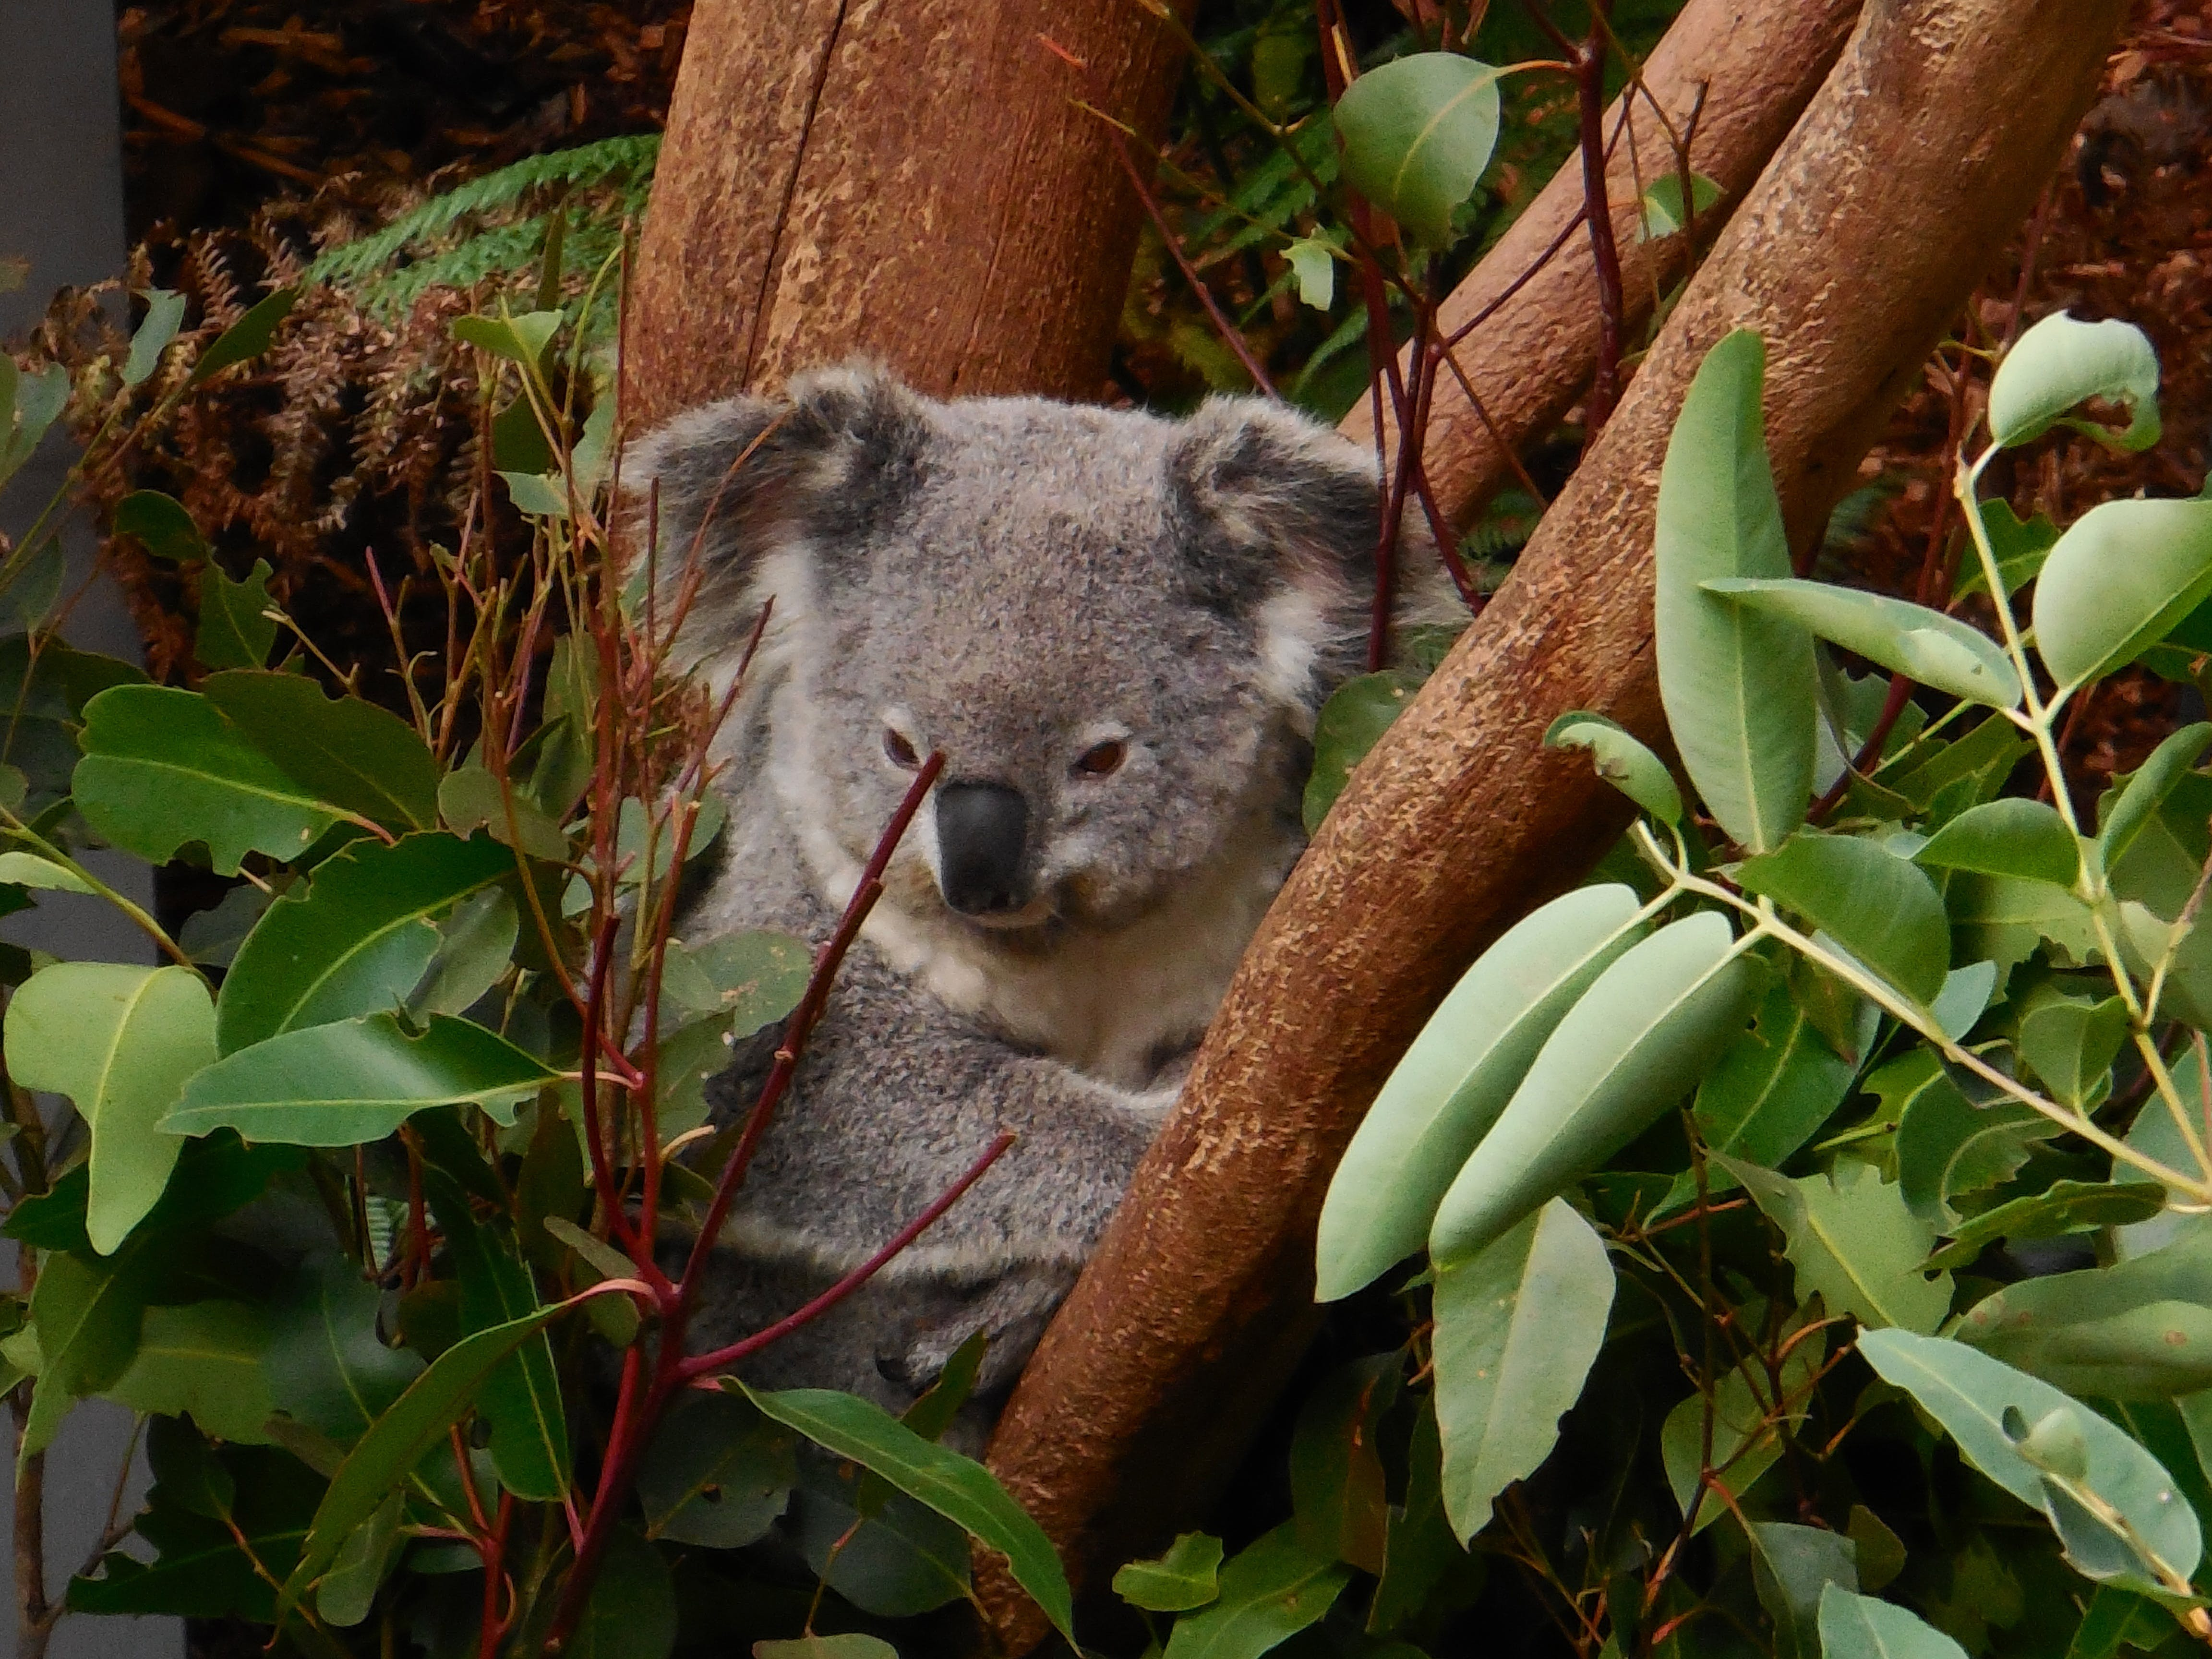 Gray Koala on Tree Branch Digital Wallpaper